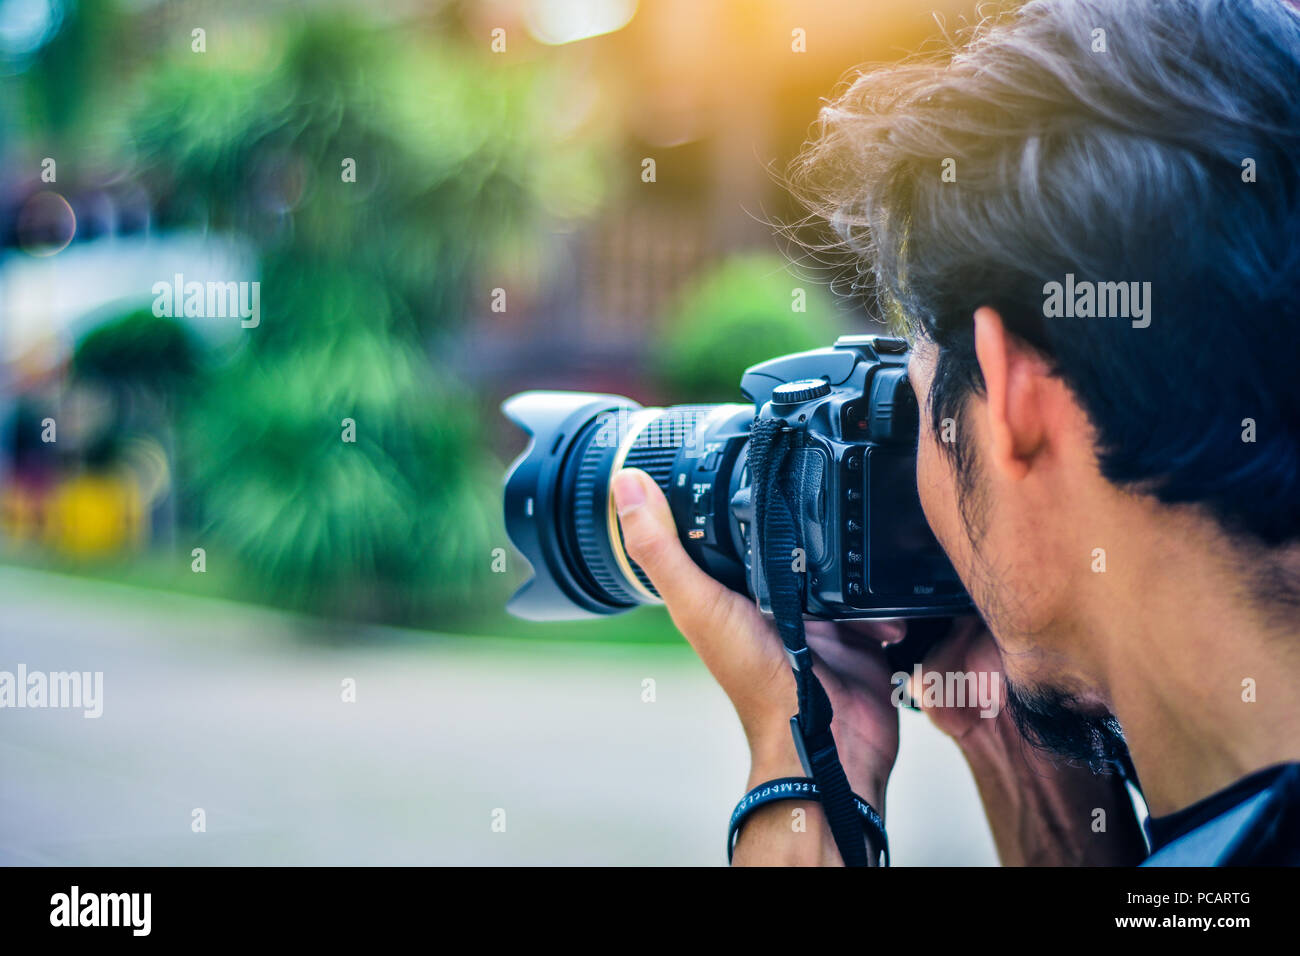 Man Using Camera Dslr Taking Photo Sunlight Background Stock Photo